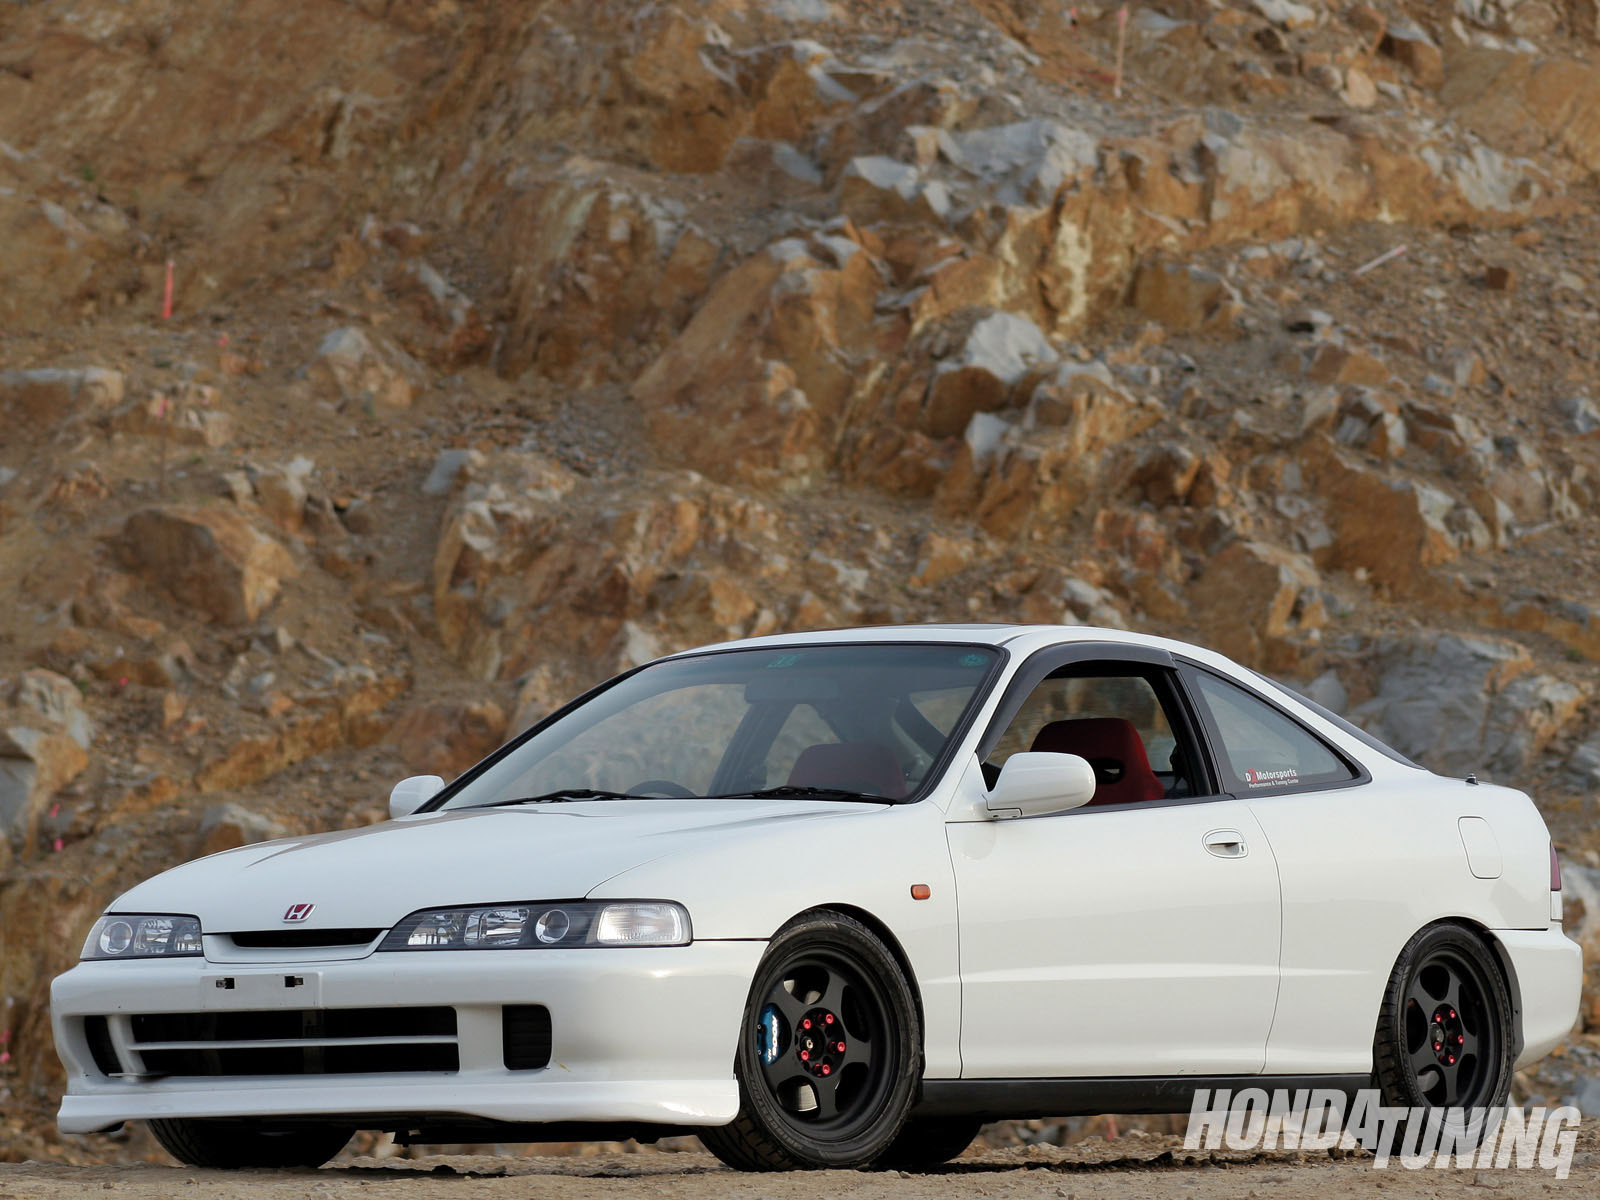 Pictures Of Honda Integra Coupe Dc on 2001 Acura Integra Gsr White